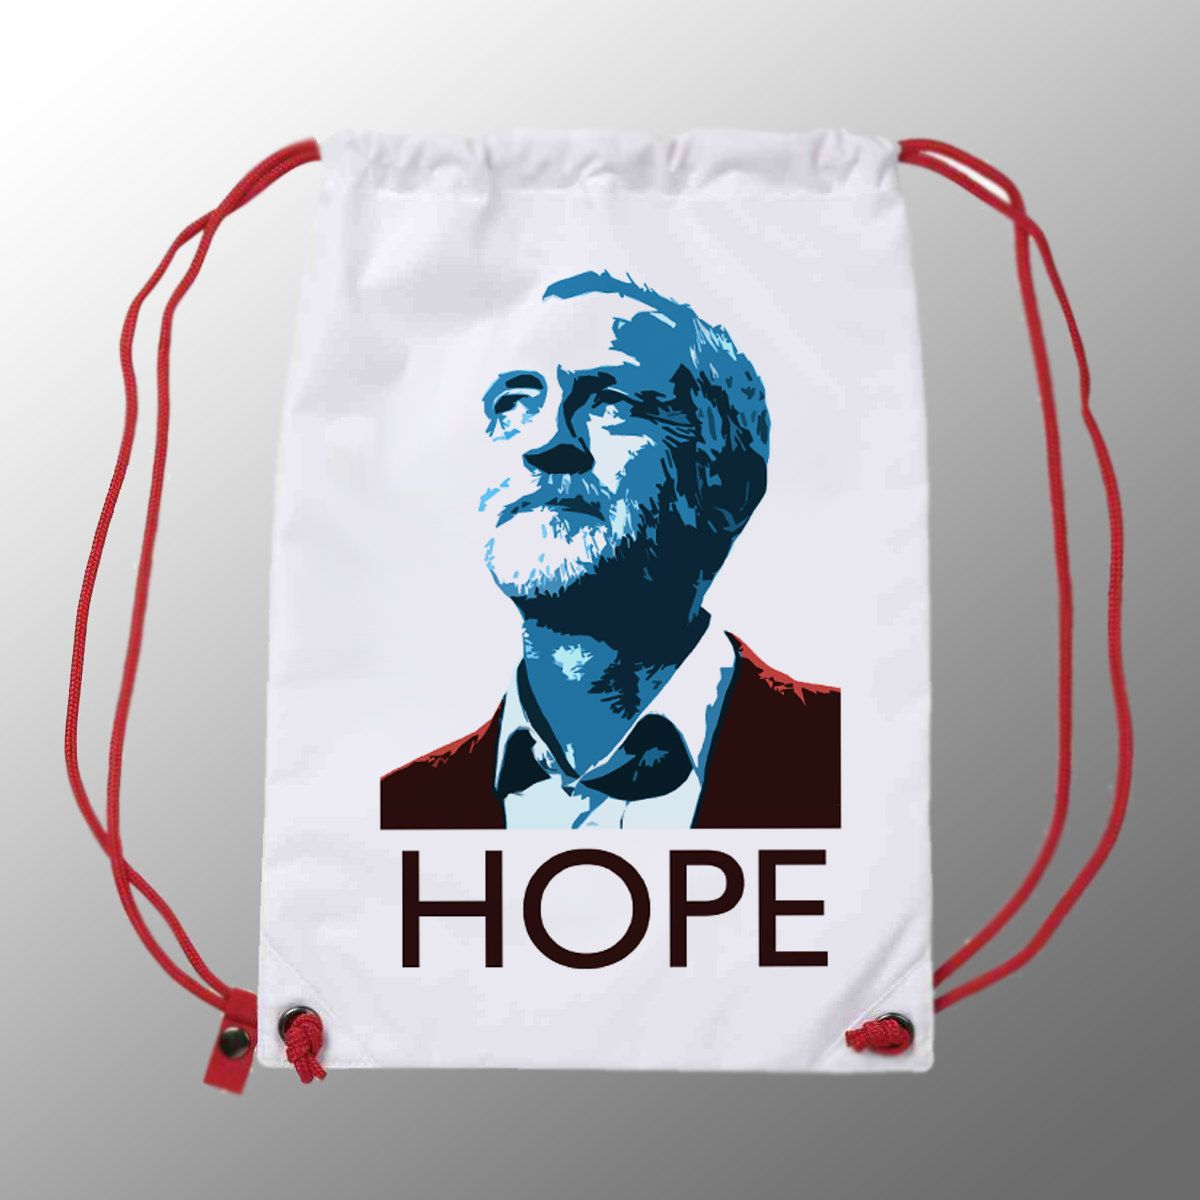 Jeremy Corbyn Hope Gym Sac   Quality Bag with Red String   Labour Party   Jeremy Corbyn   Momentum   by LeftwardTendency on Etsy